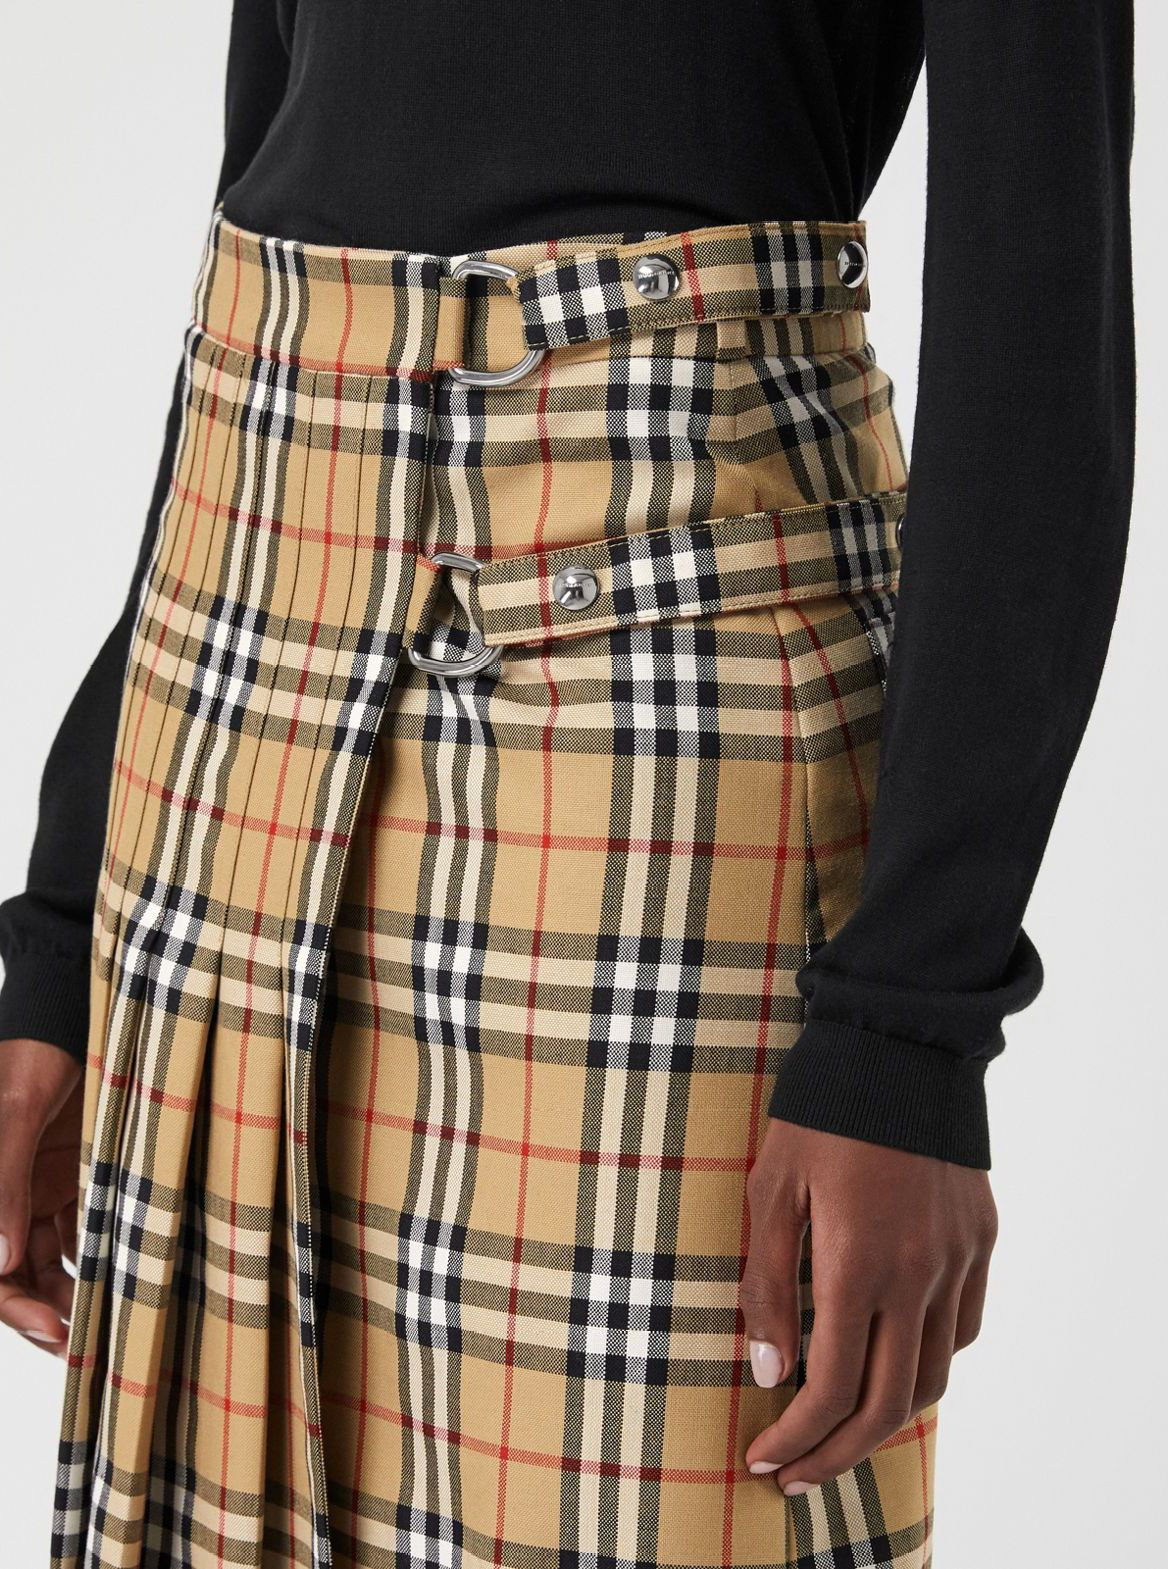 1689d8206197 A longline kilt clad in #Burberry Vintage check wool with trench-inspired  D-ring strap closures